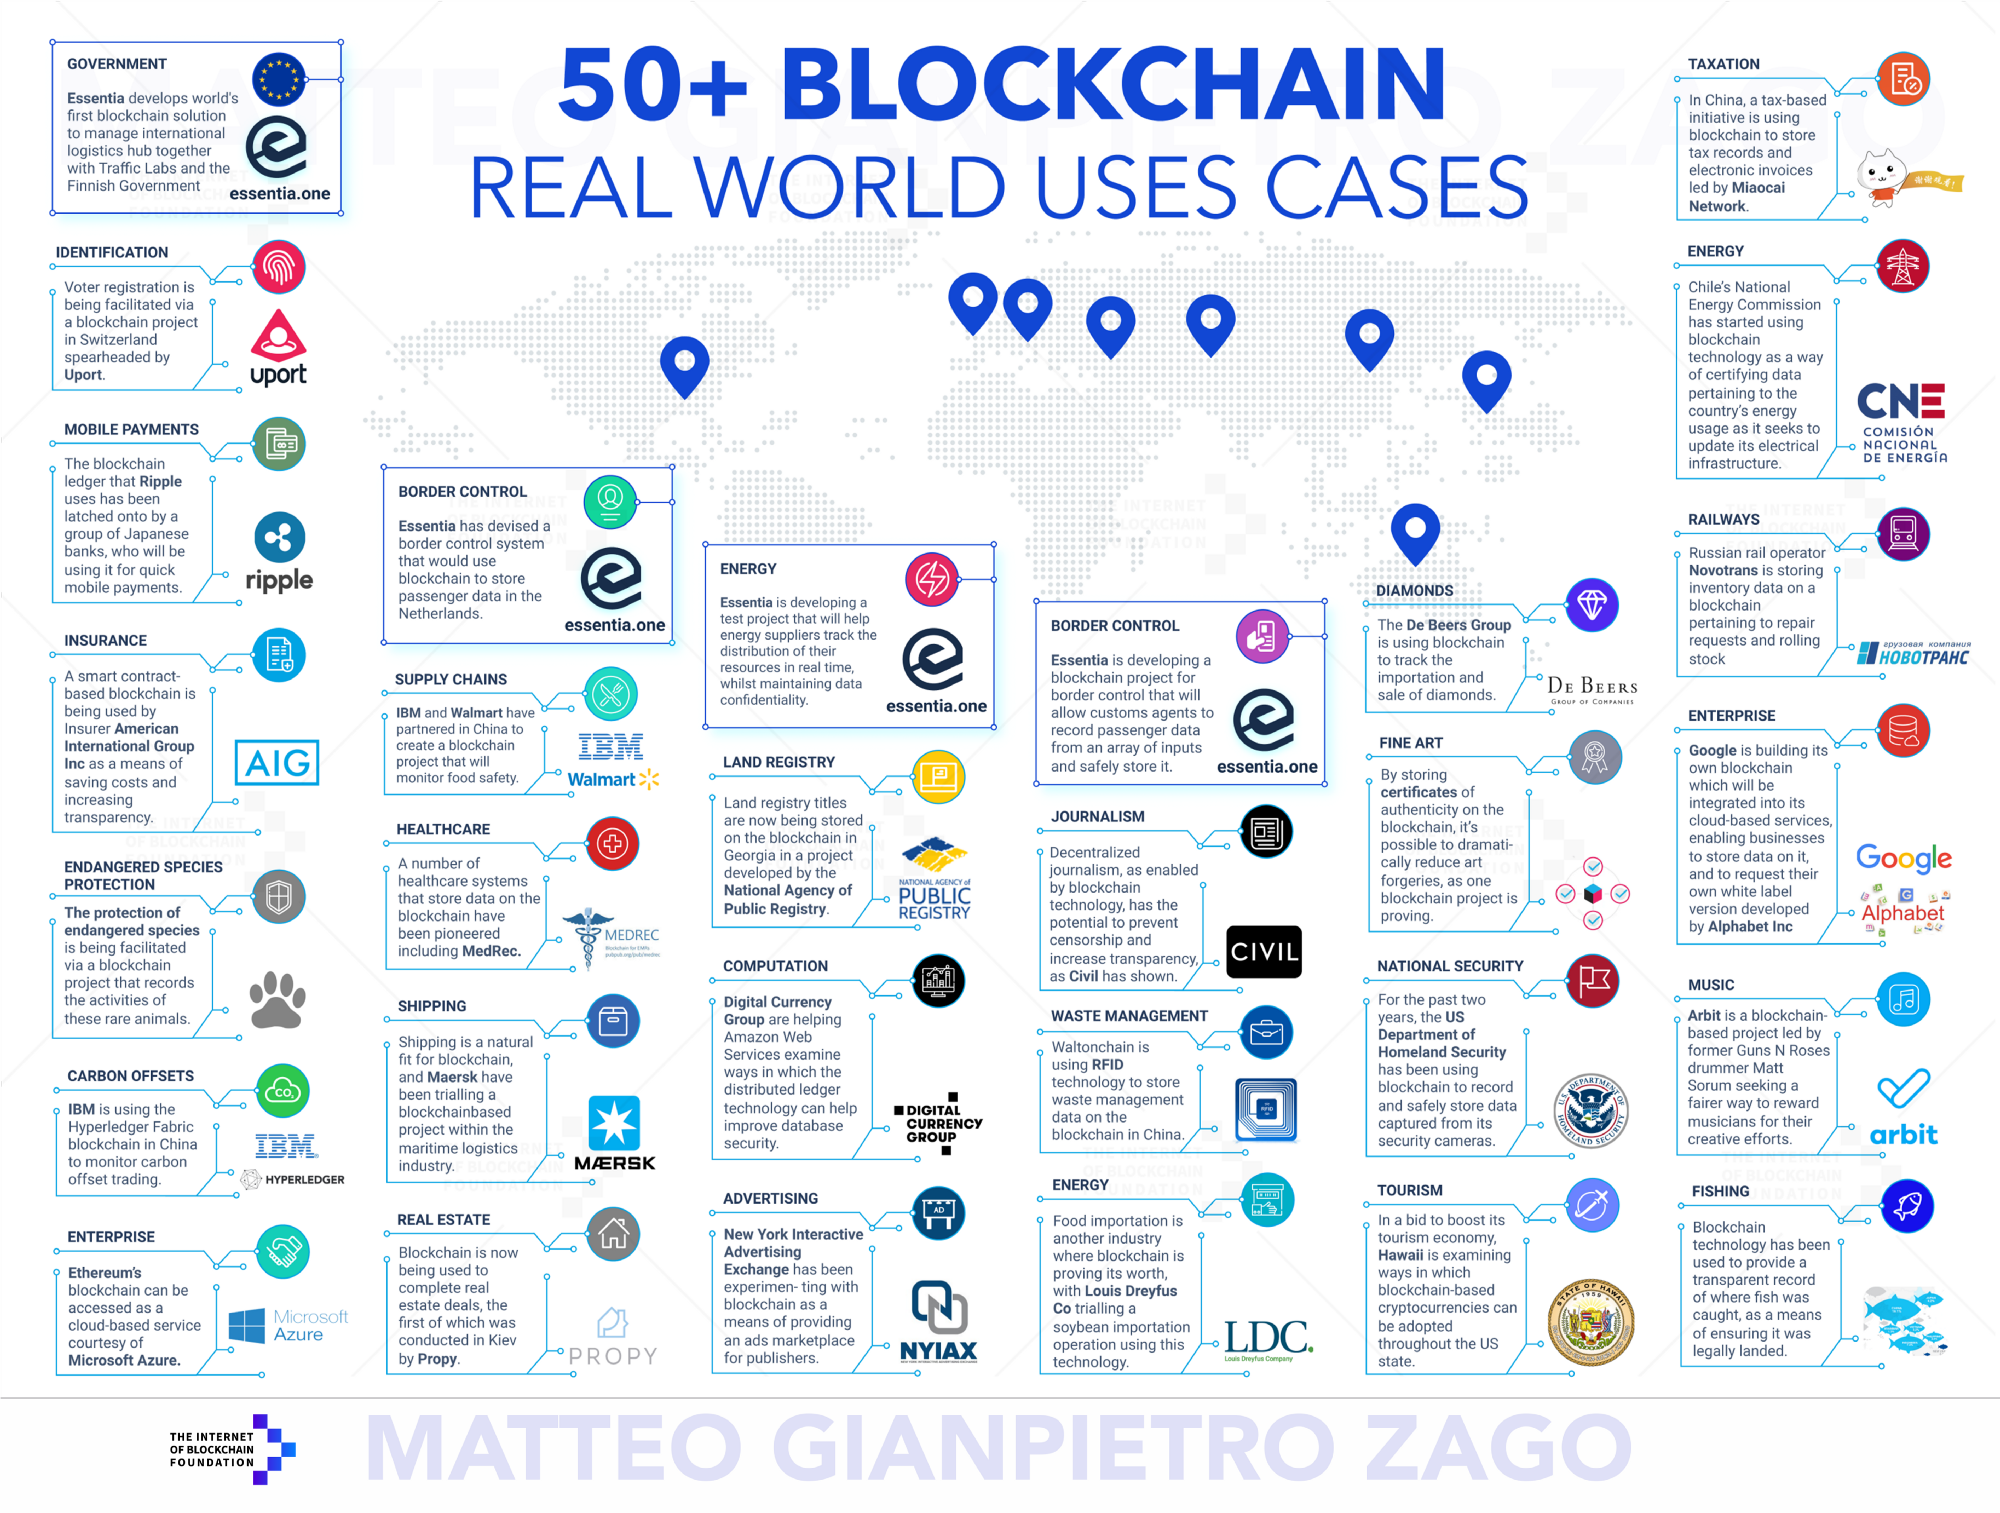 50+ Examples of How Blockchains are Taking Over the World 3